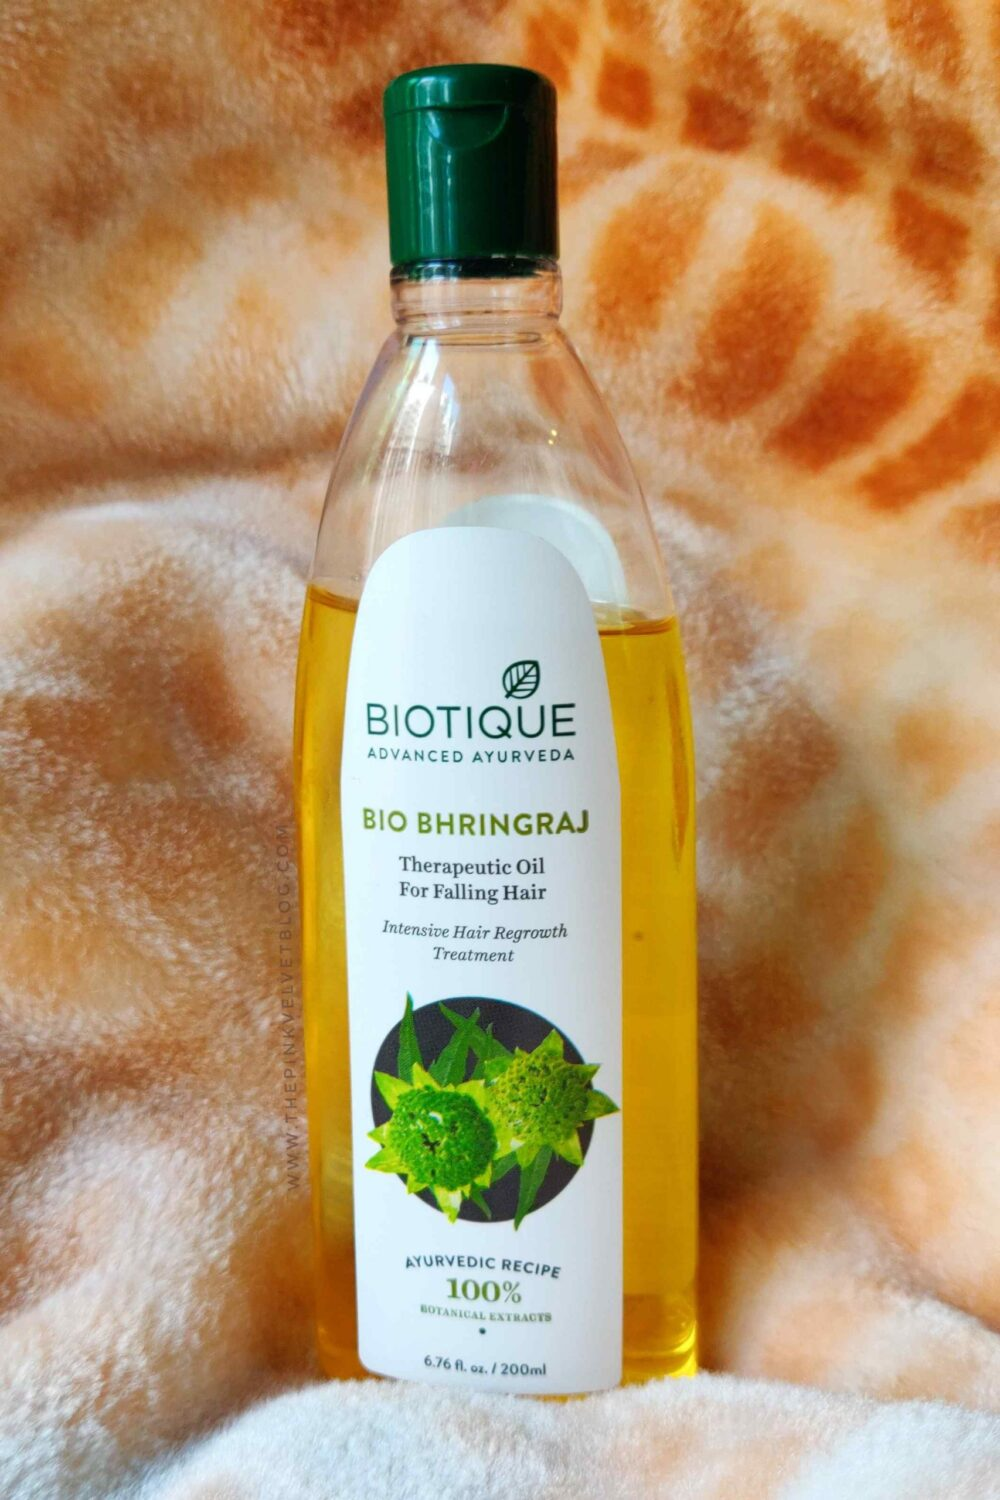 Biotique Bhringraj Therapeutic Oil for Falling Hair Review